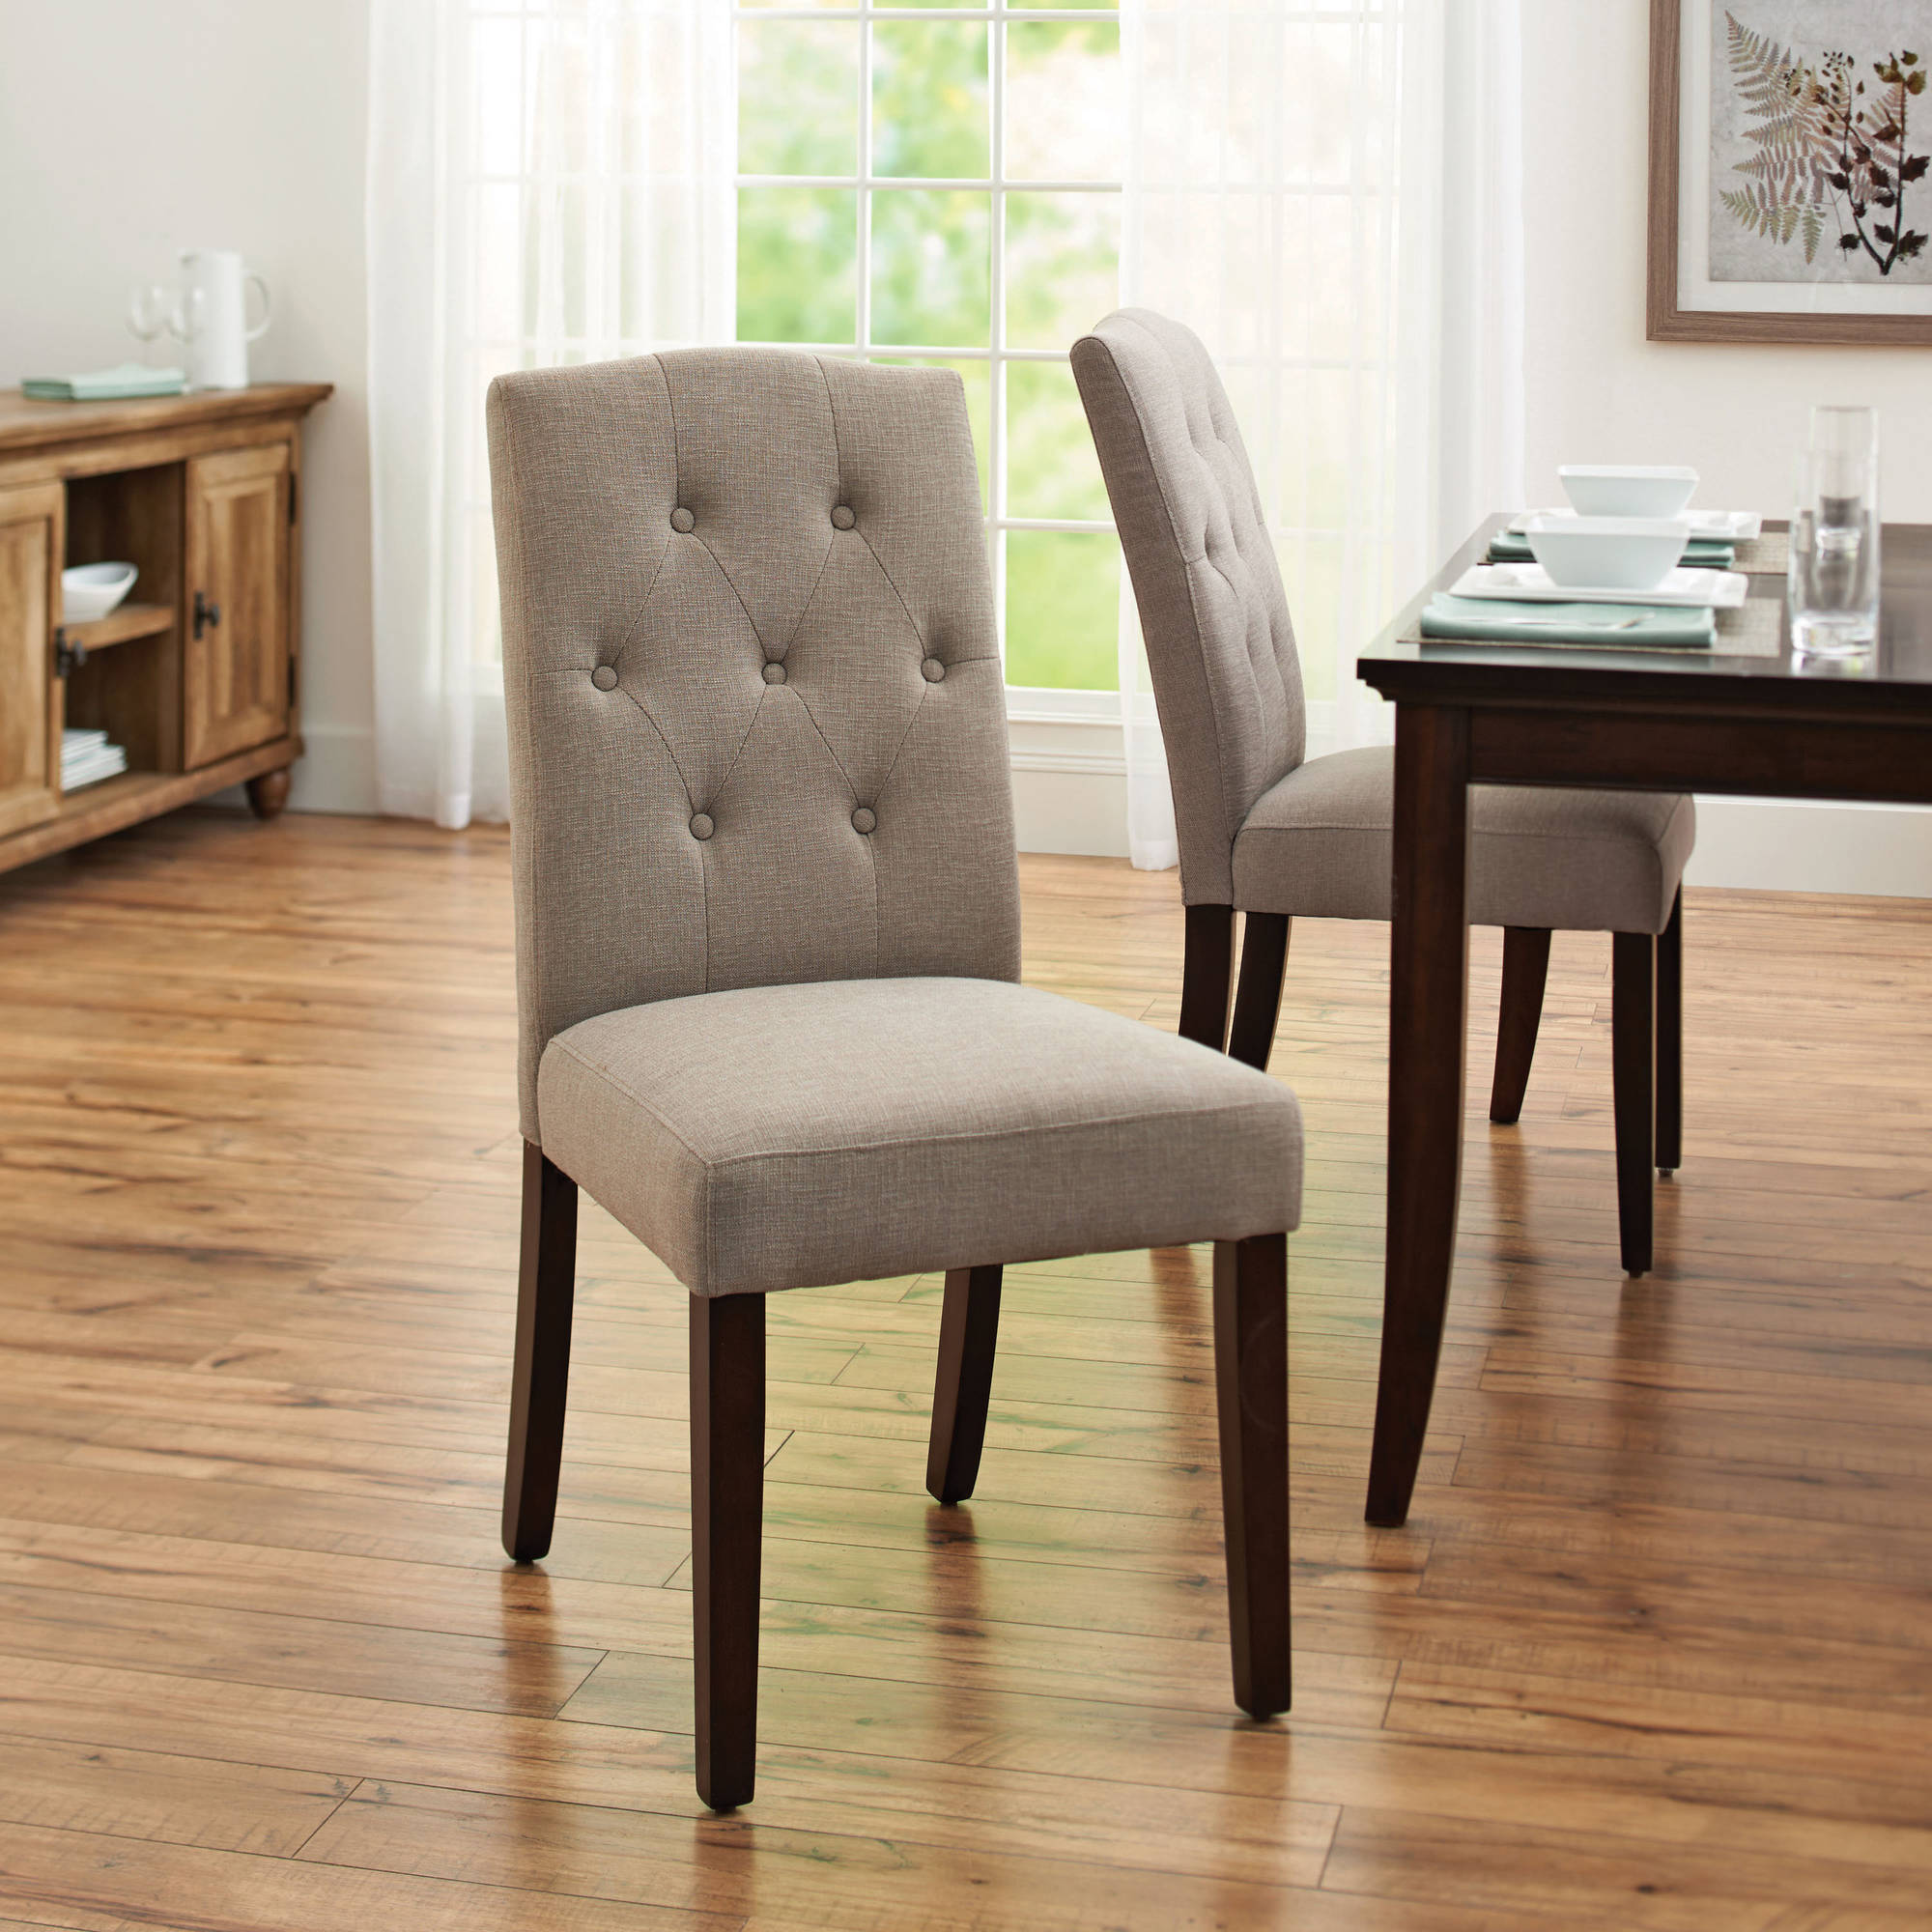 Fabric Dining Chairs | Tufted Dining Room Chairs | Tufted Dining Chair